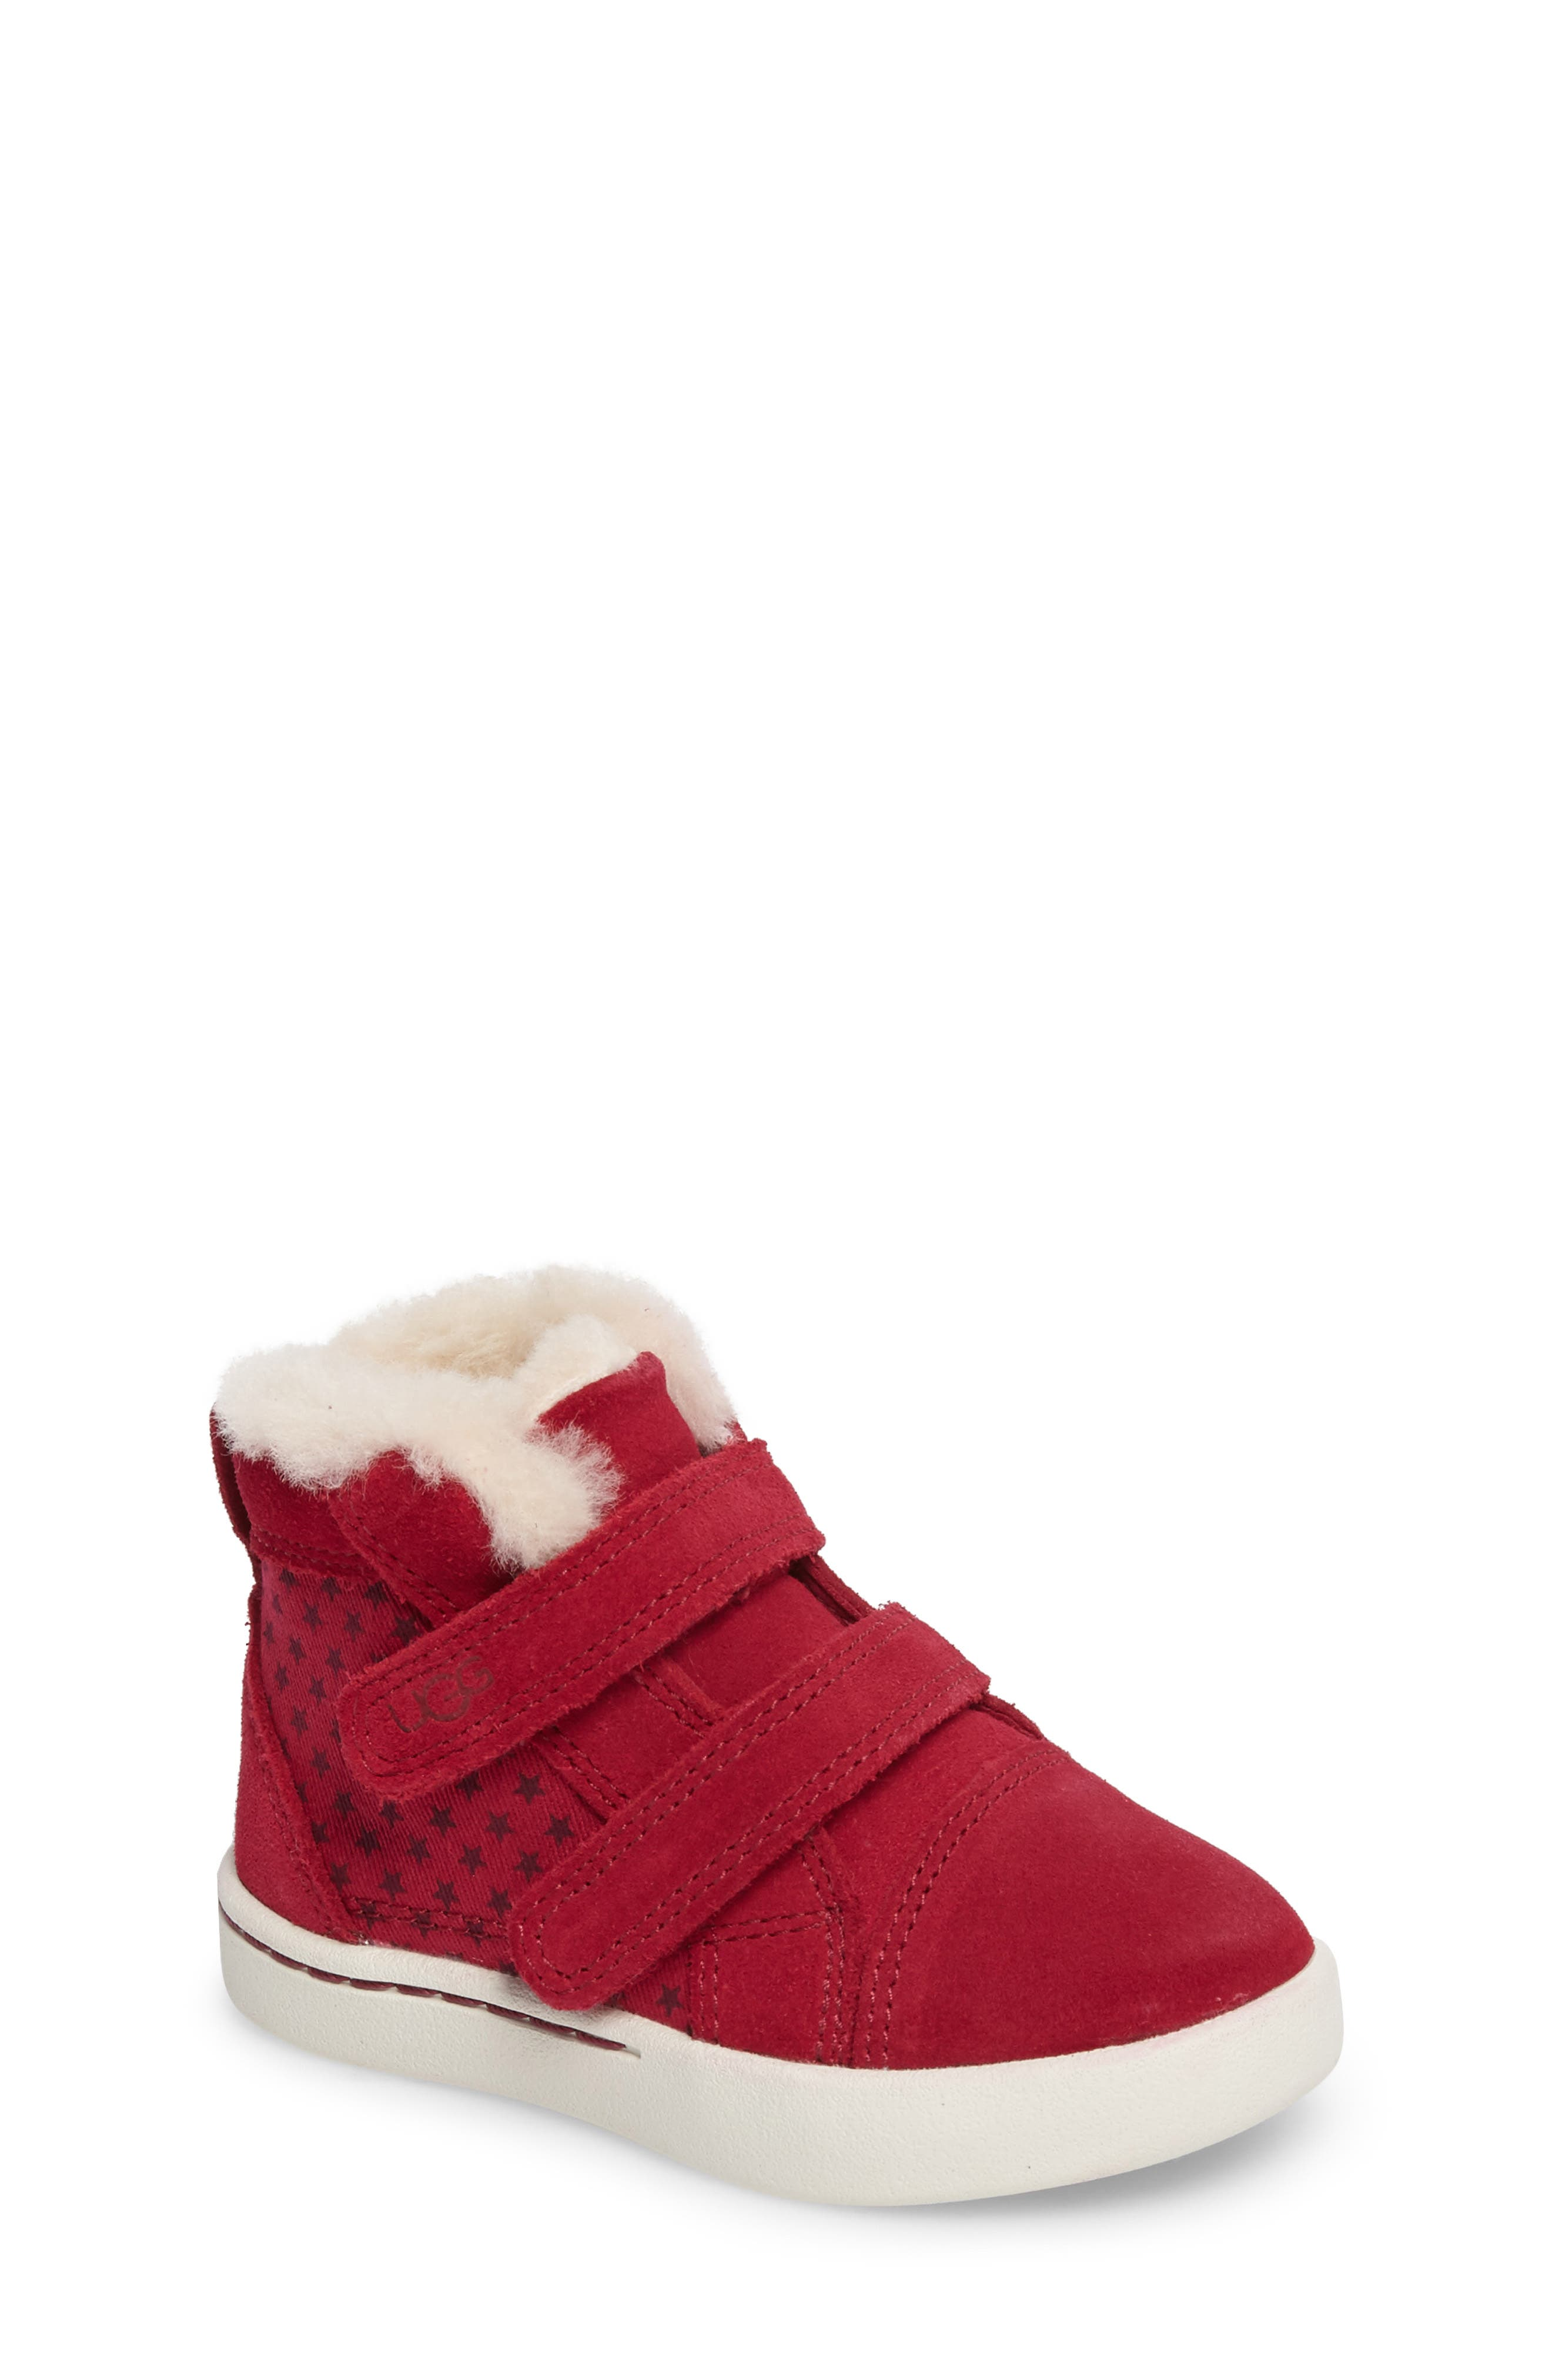 Rennon Stars High Top Sneaker,                             Main thumbnail 1, color,                             Brambleberry